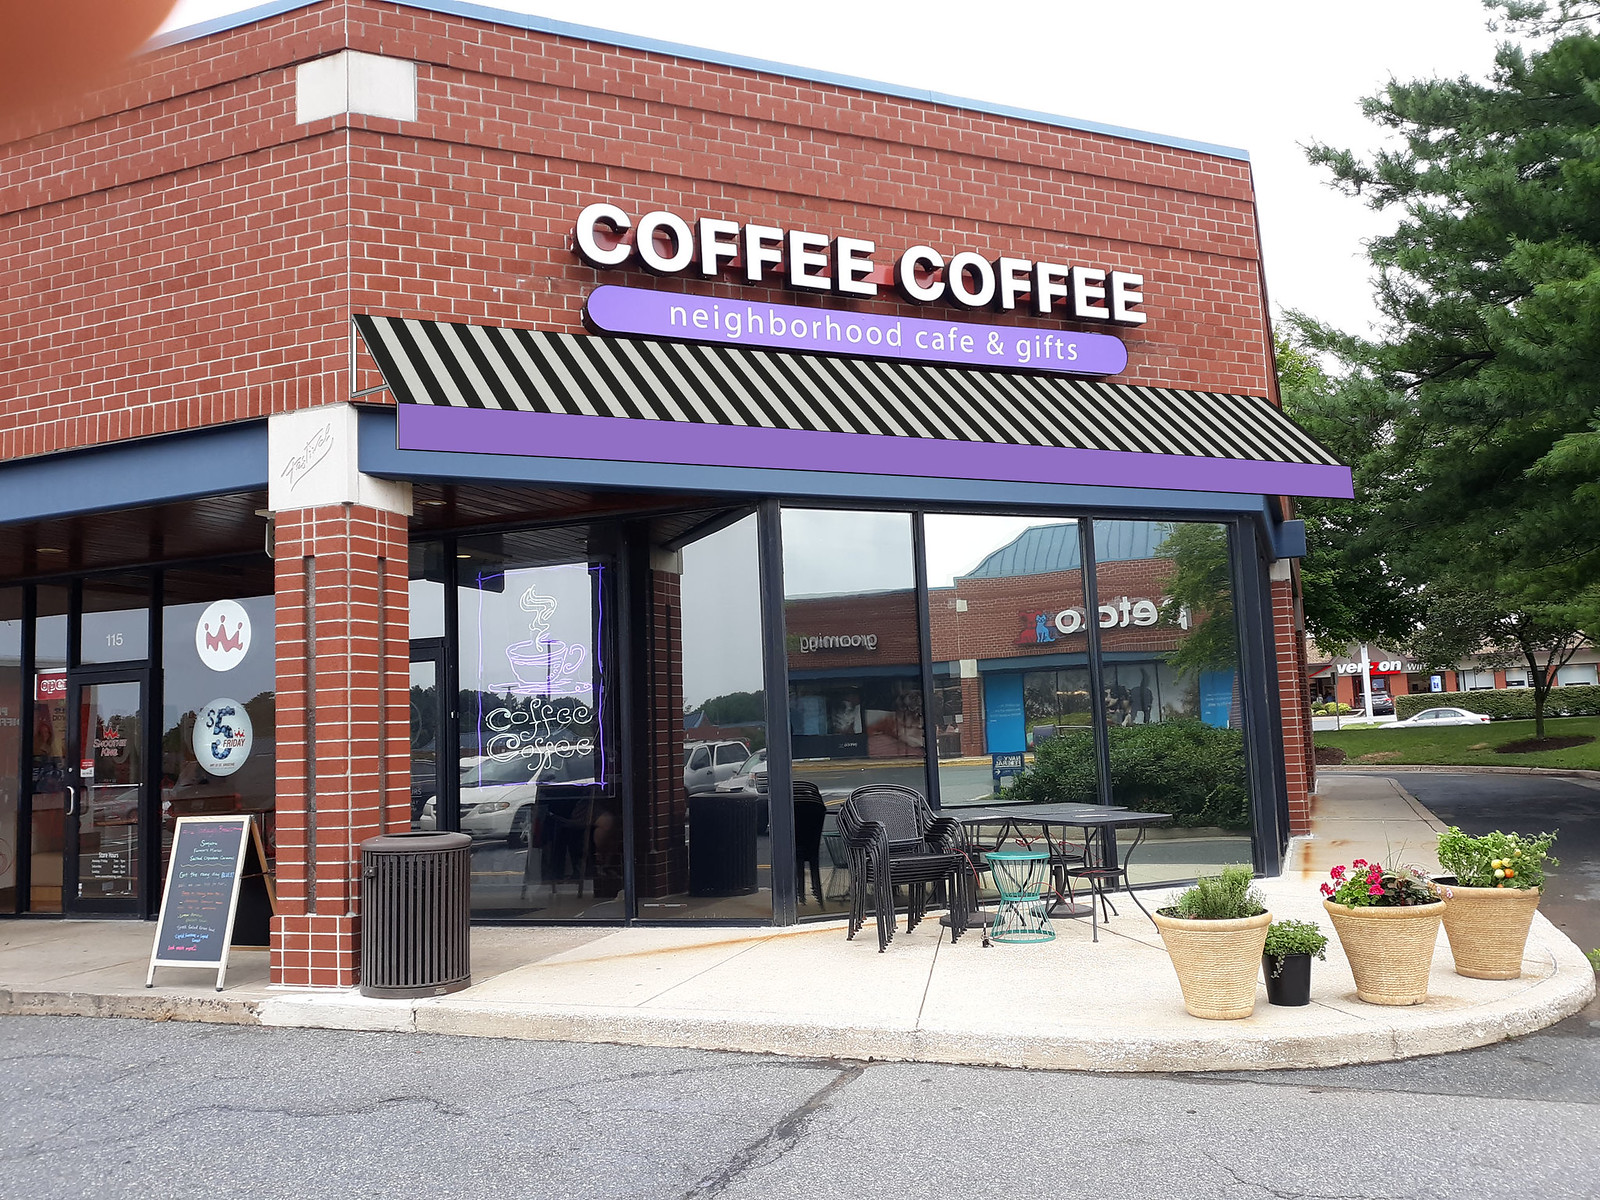 Coffee Storefront Awning Rendering